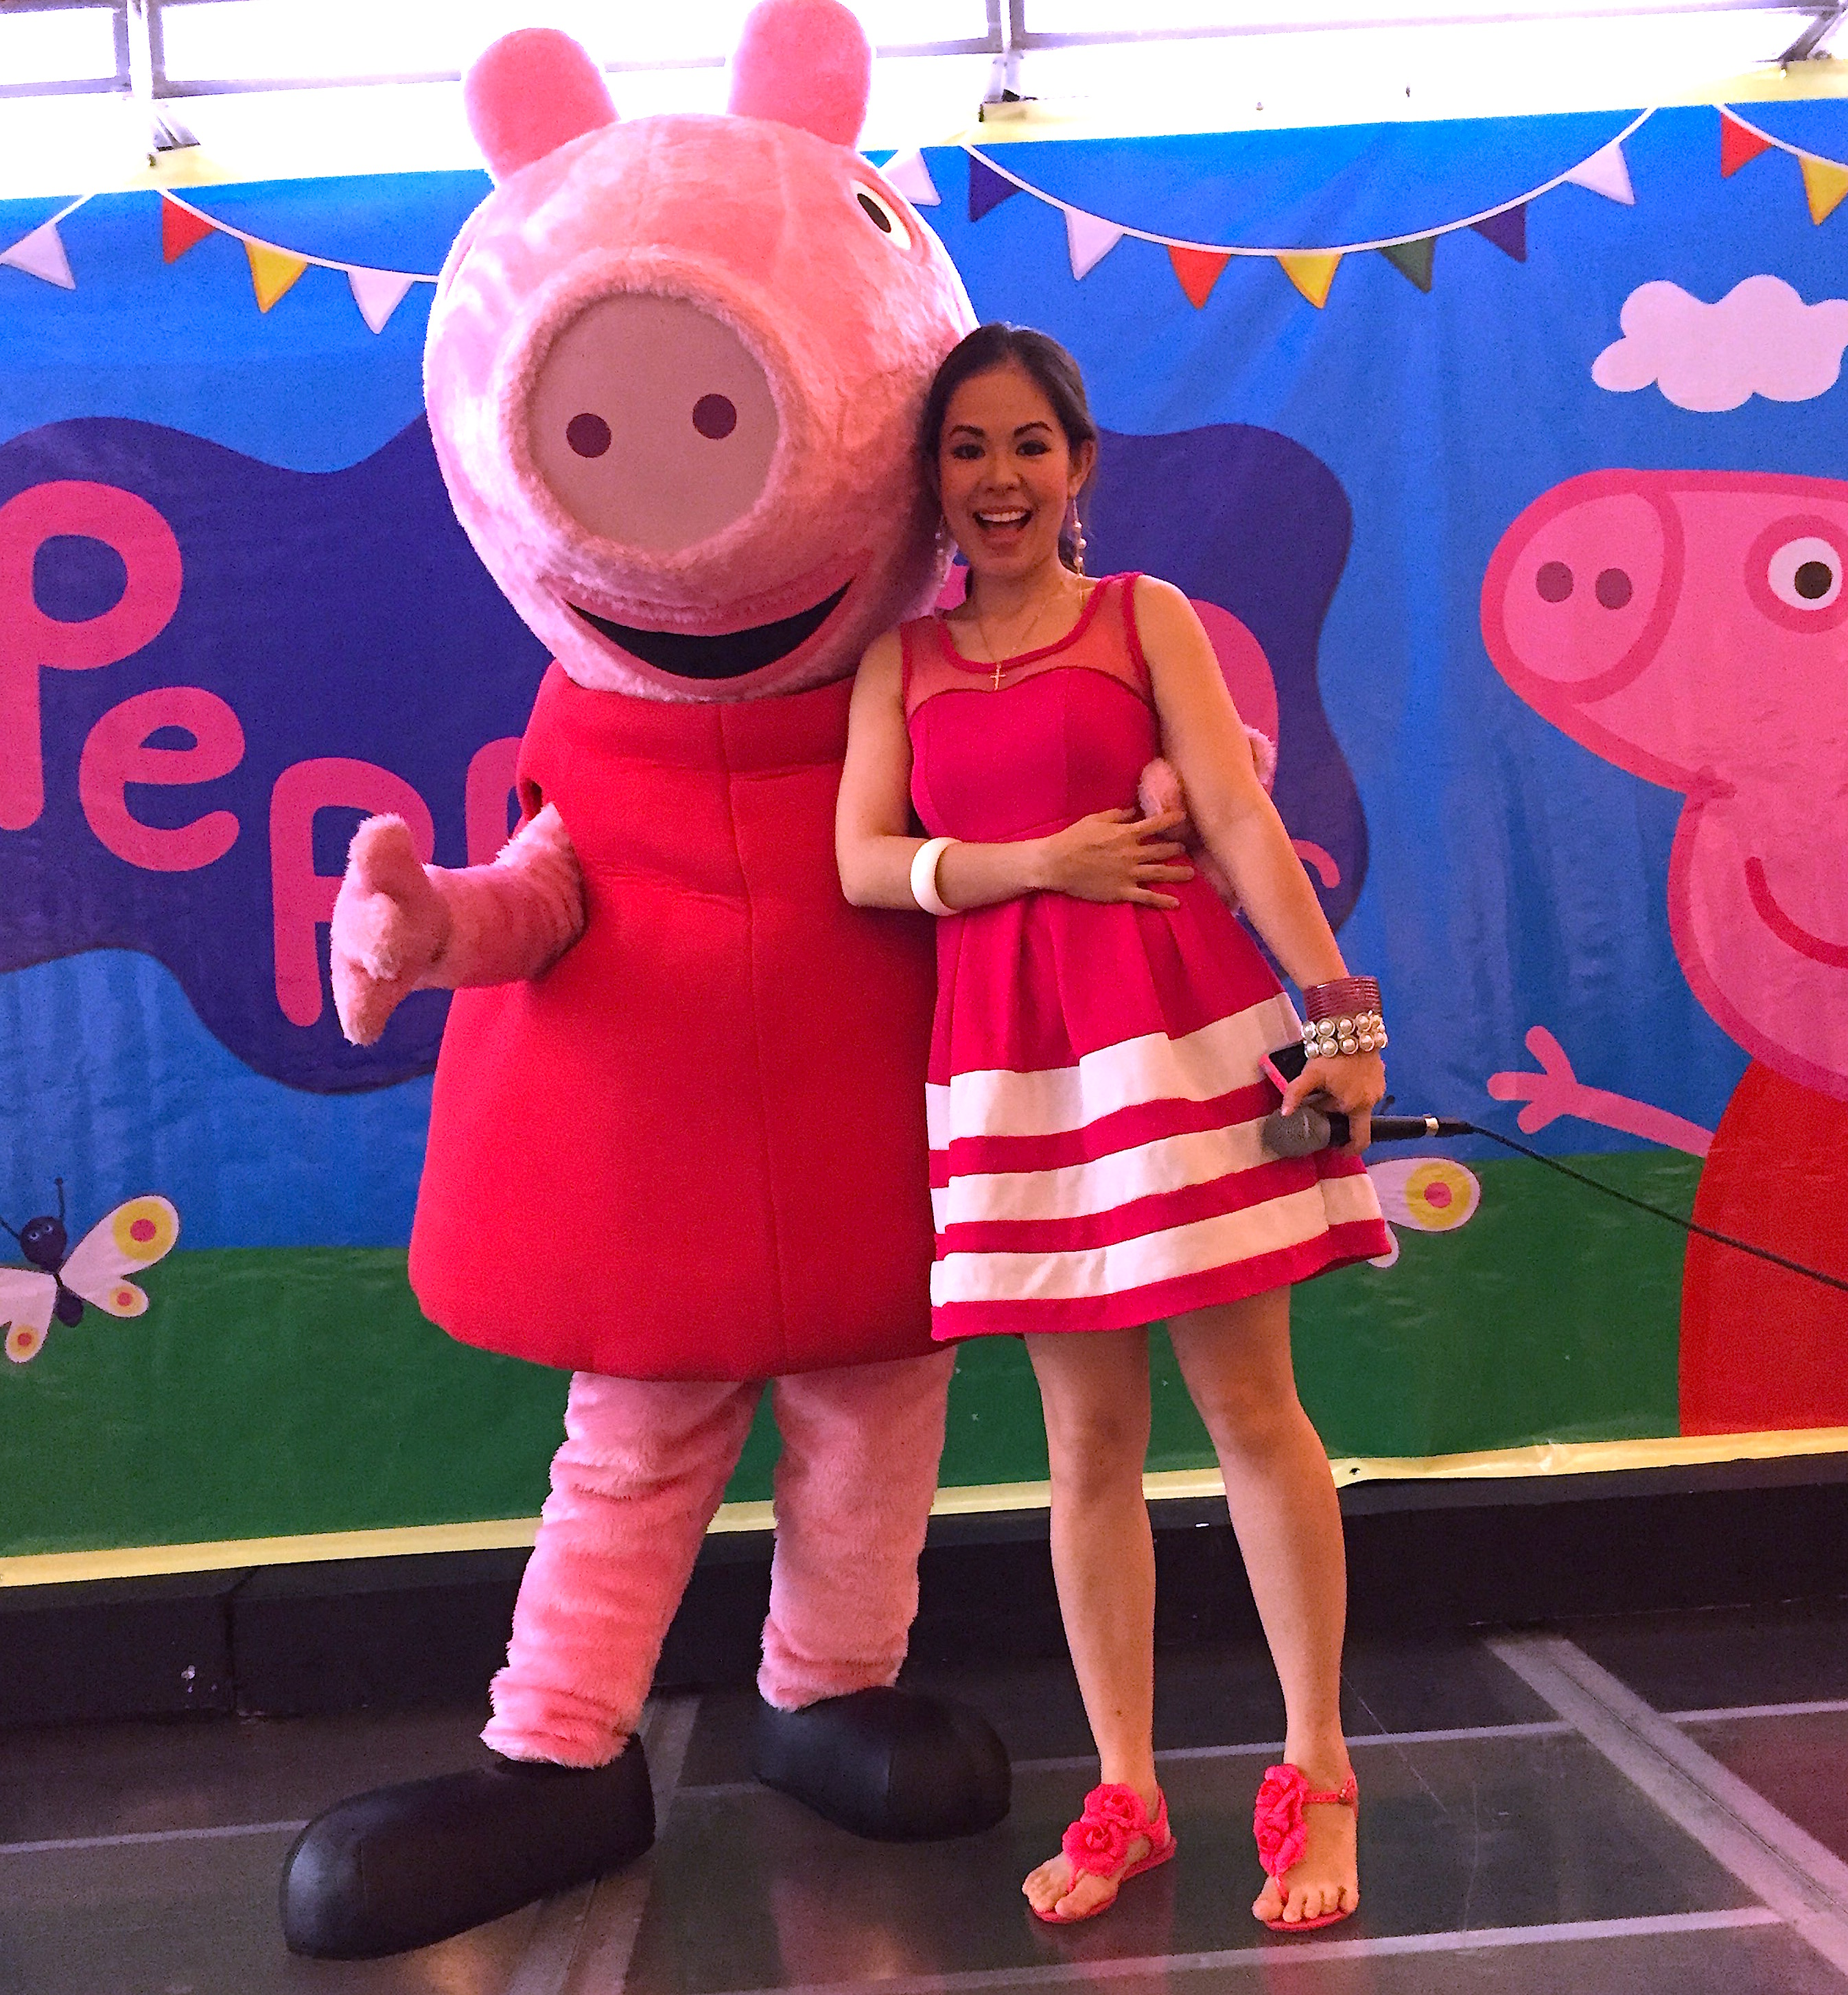 Marylaine Viernes Emcees For The Pig Tastic Second Day Of Peppa